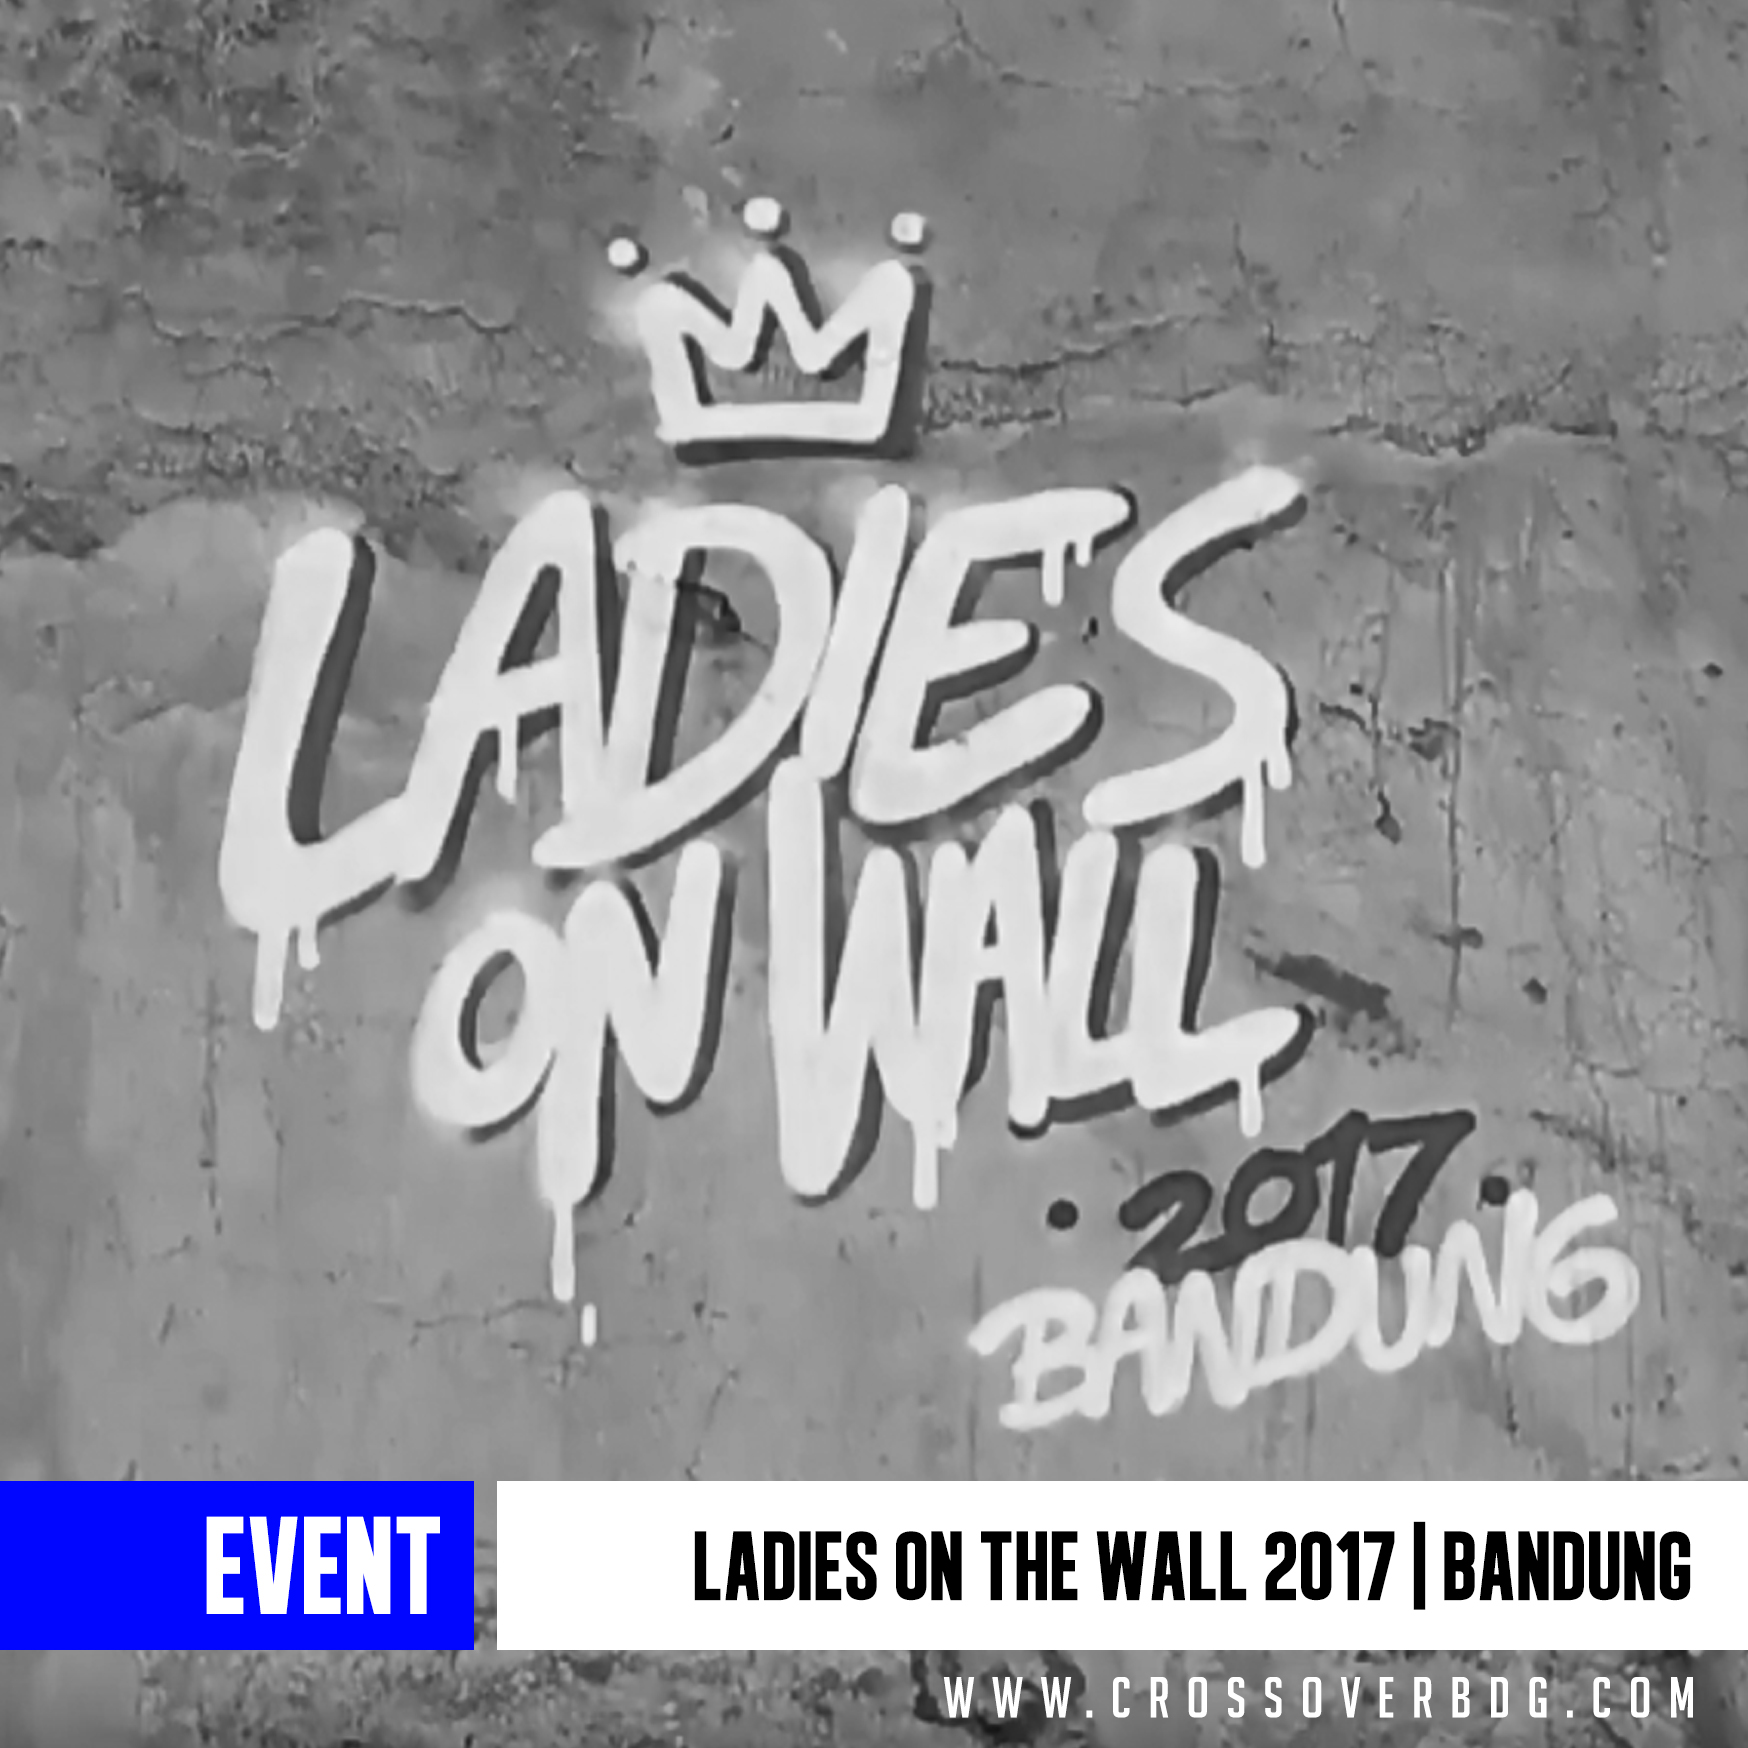 EVENT: LADIES ON THE WALL BANDUNG 2017 image